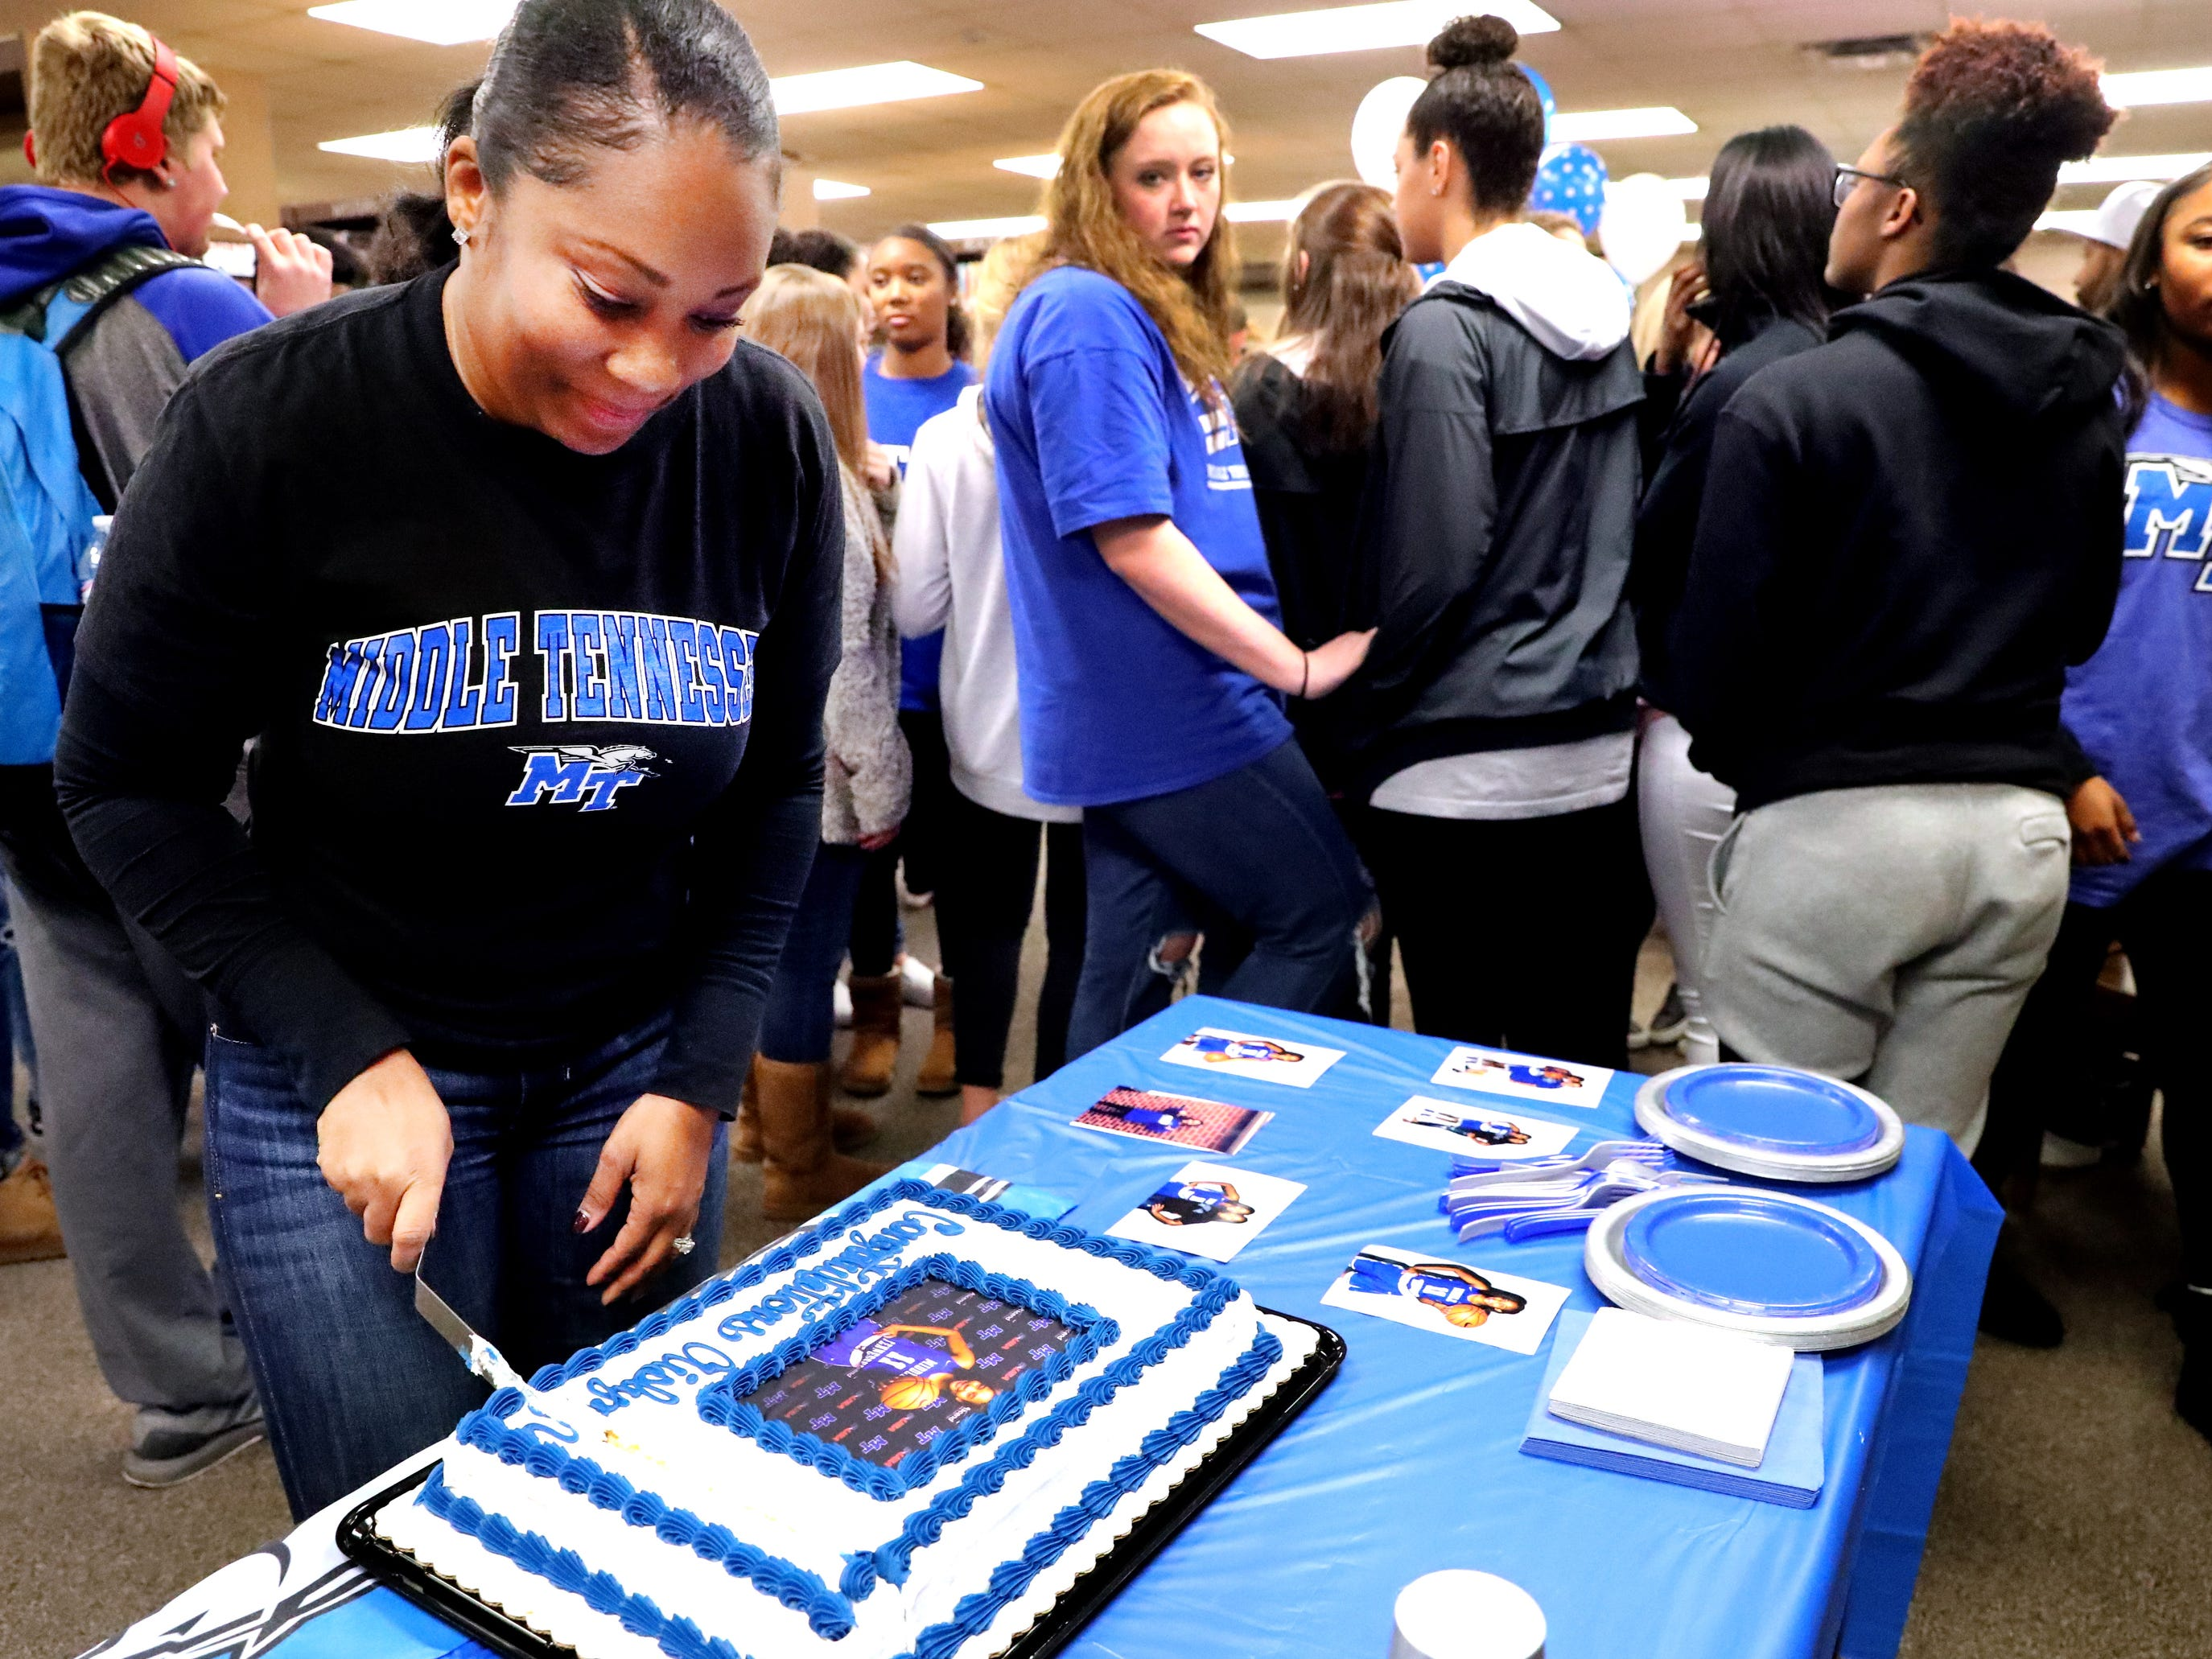 Sherry Hayes the mom of Riverdale's Aislynn Hayes cuts a cake after her daughter Aislynn Hayes signed to play basketball at MTSU on Wednesday, Nov. 14, 2018.